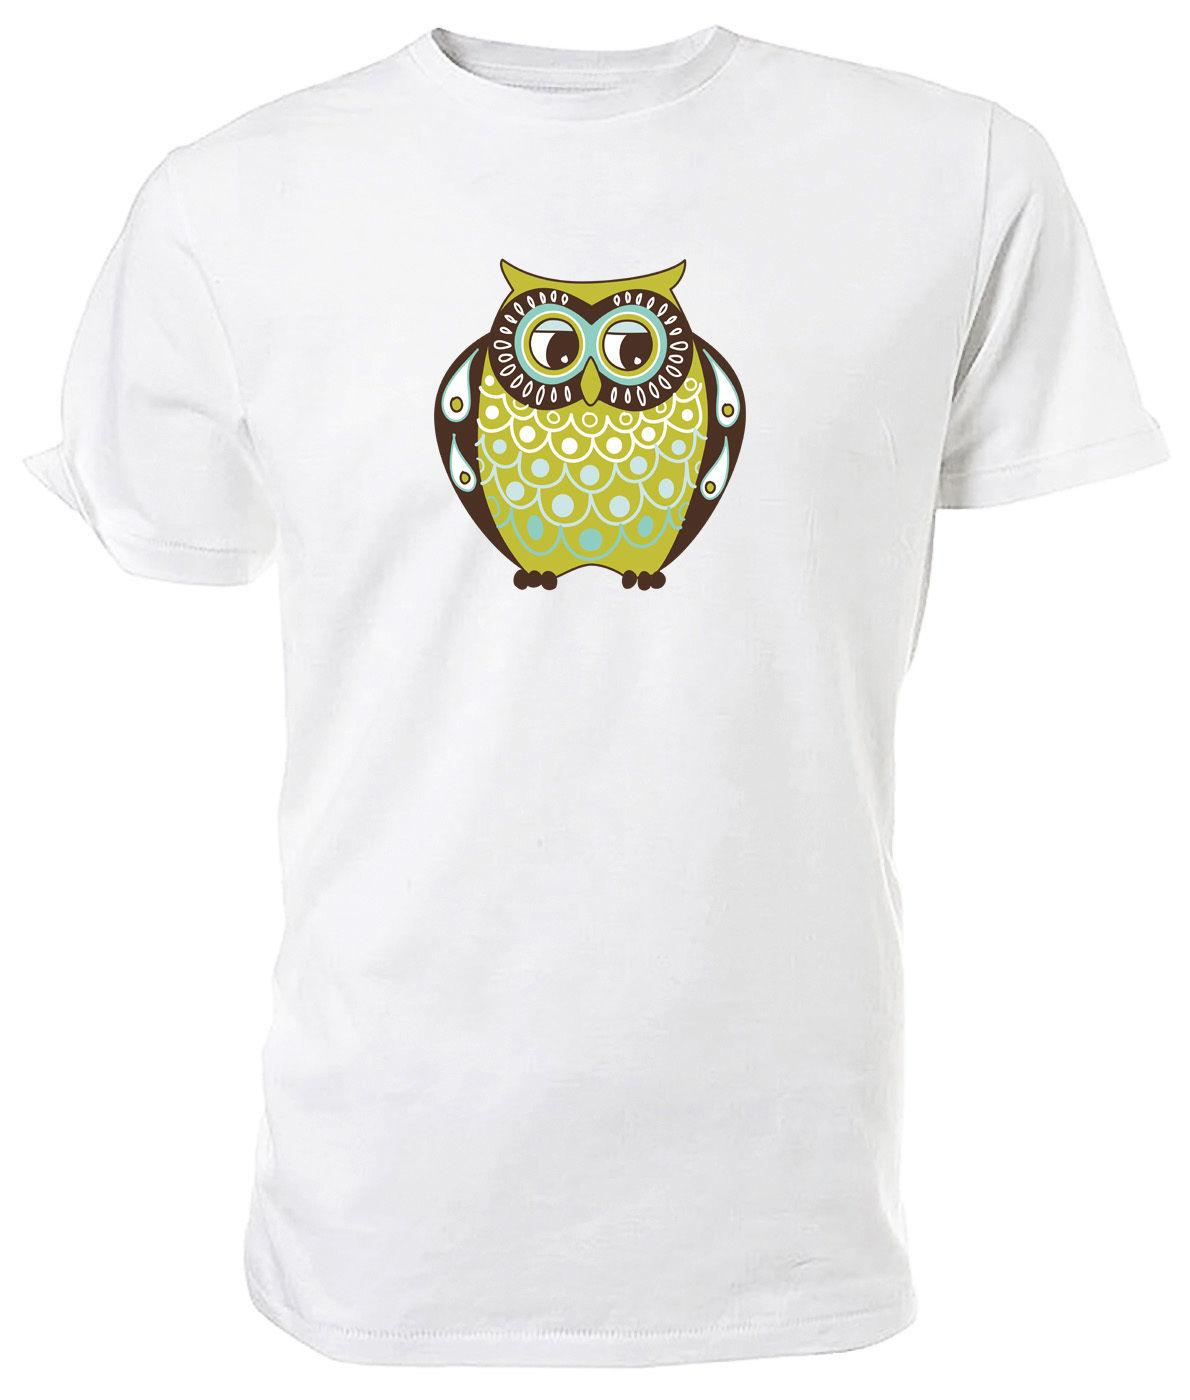 af51f8ce7 Owl T Shirt, Owl Dad, WILDLIFE Choice Of Size & Colour!100% Cotton Tee  Shirttops Wholesale Tee The Who T Shirts Online Tshirt Shopping From  Lifestyletshirt, ...